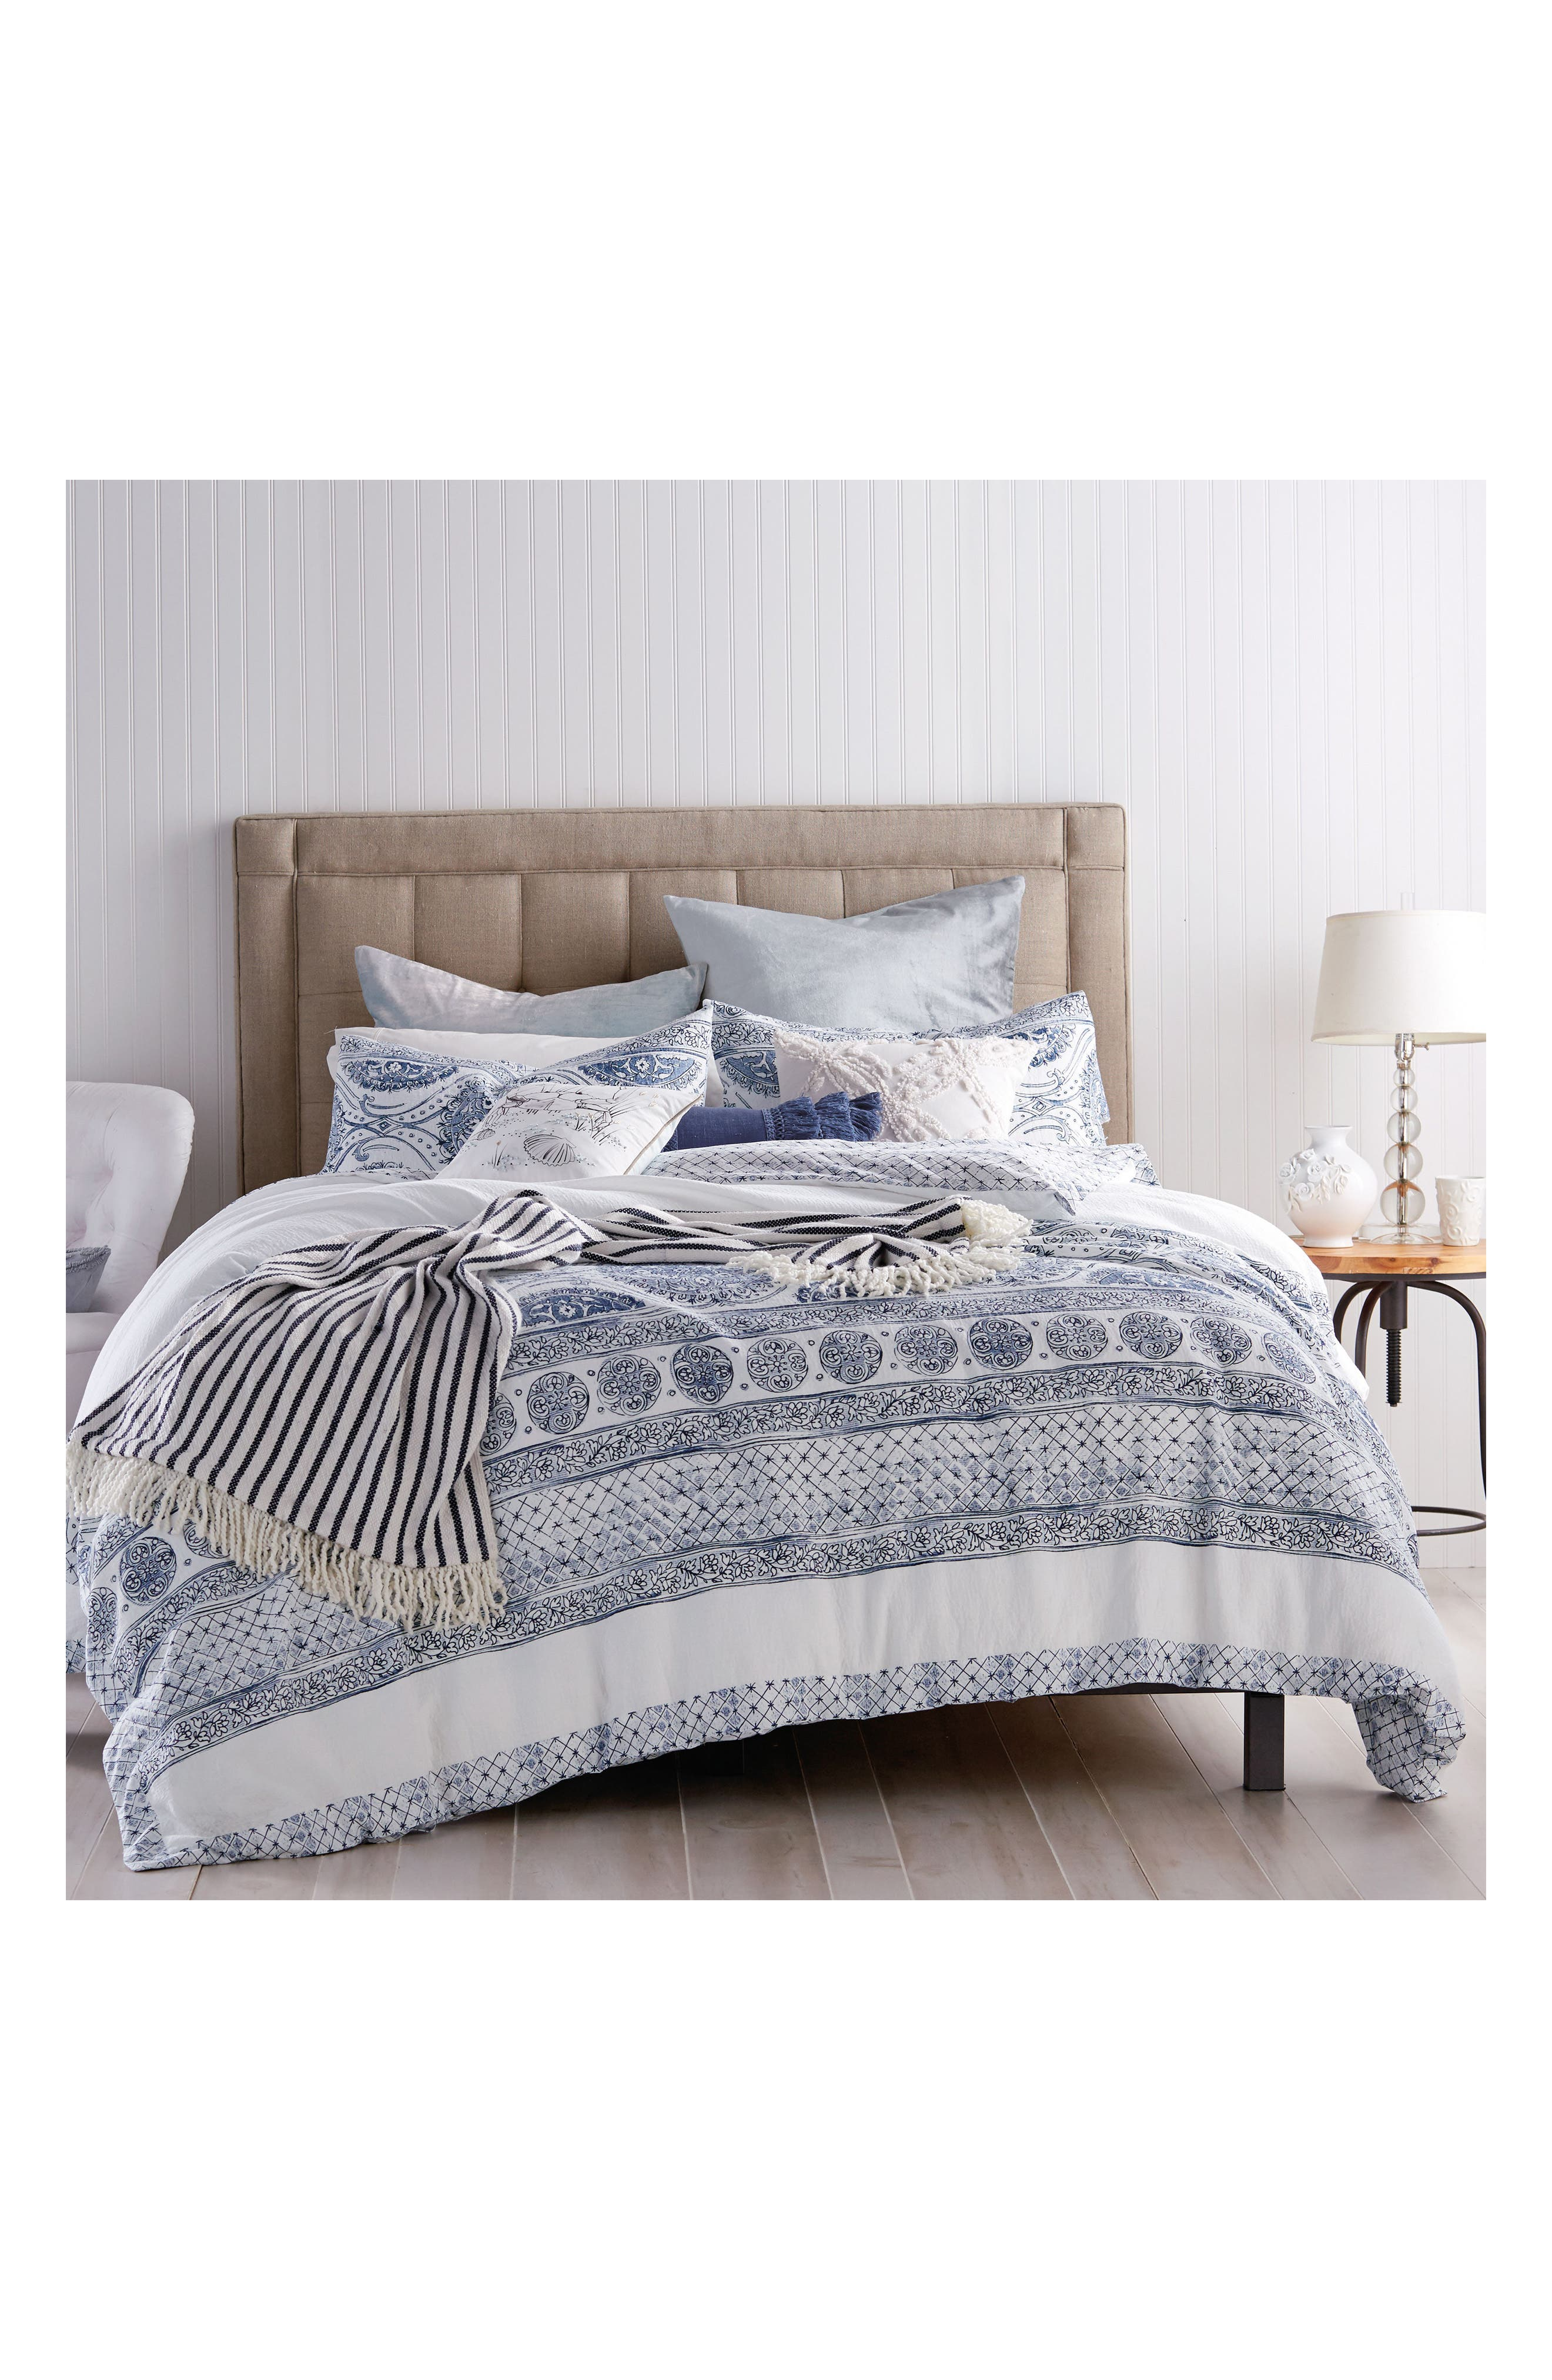 Peri Home Matelasse Medallion Bedding Collection Size FullQueen  Blue